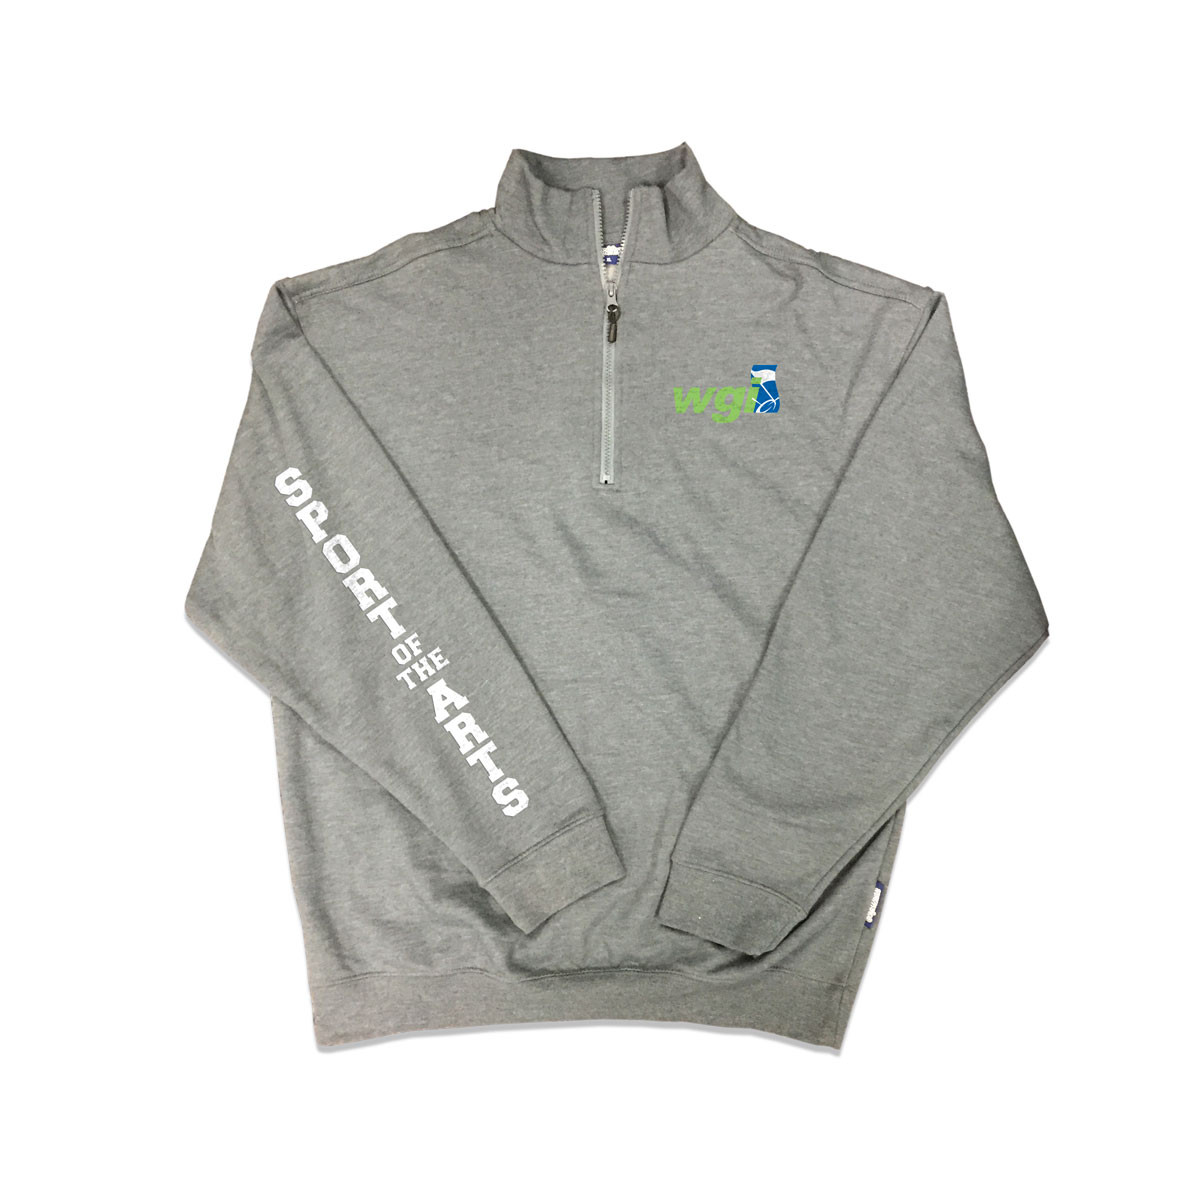 WGI Fleece 1/4 Zip Jacket